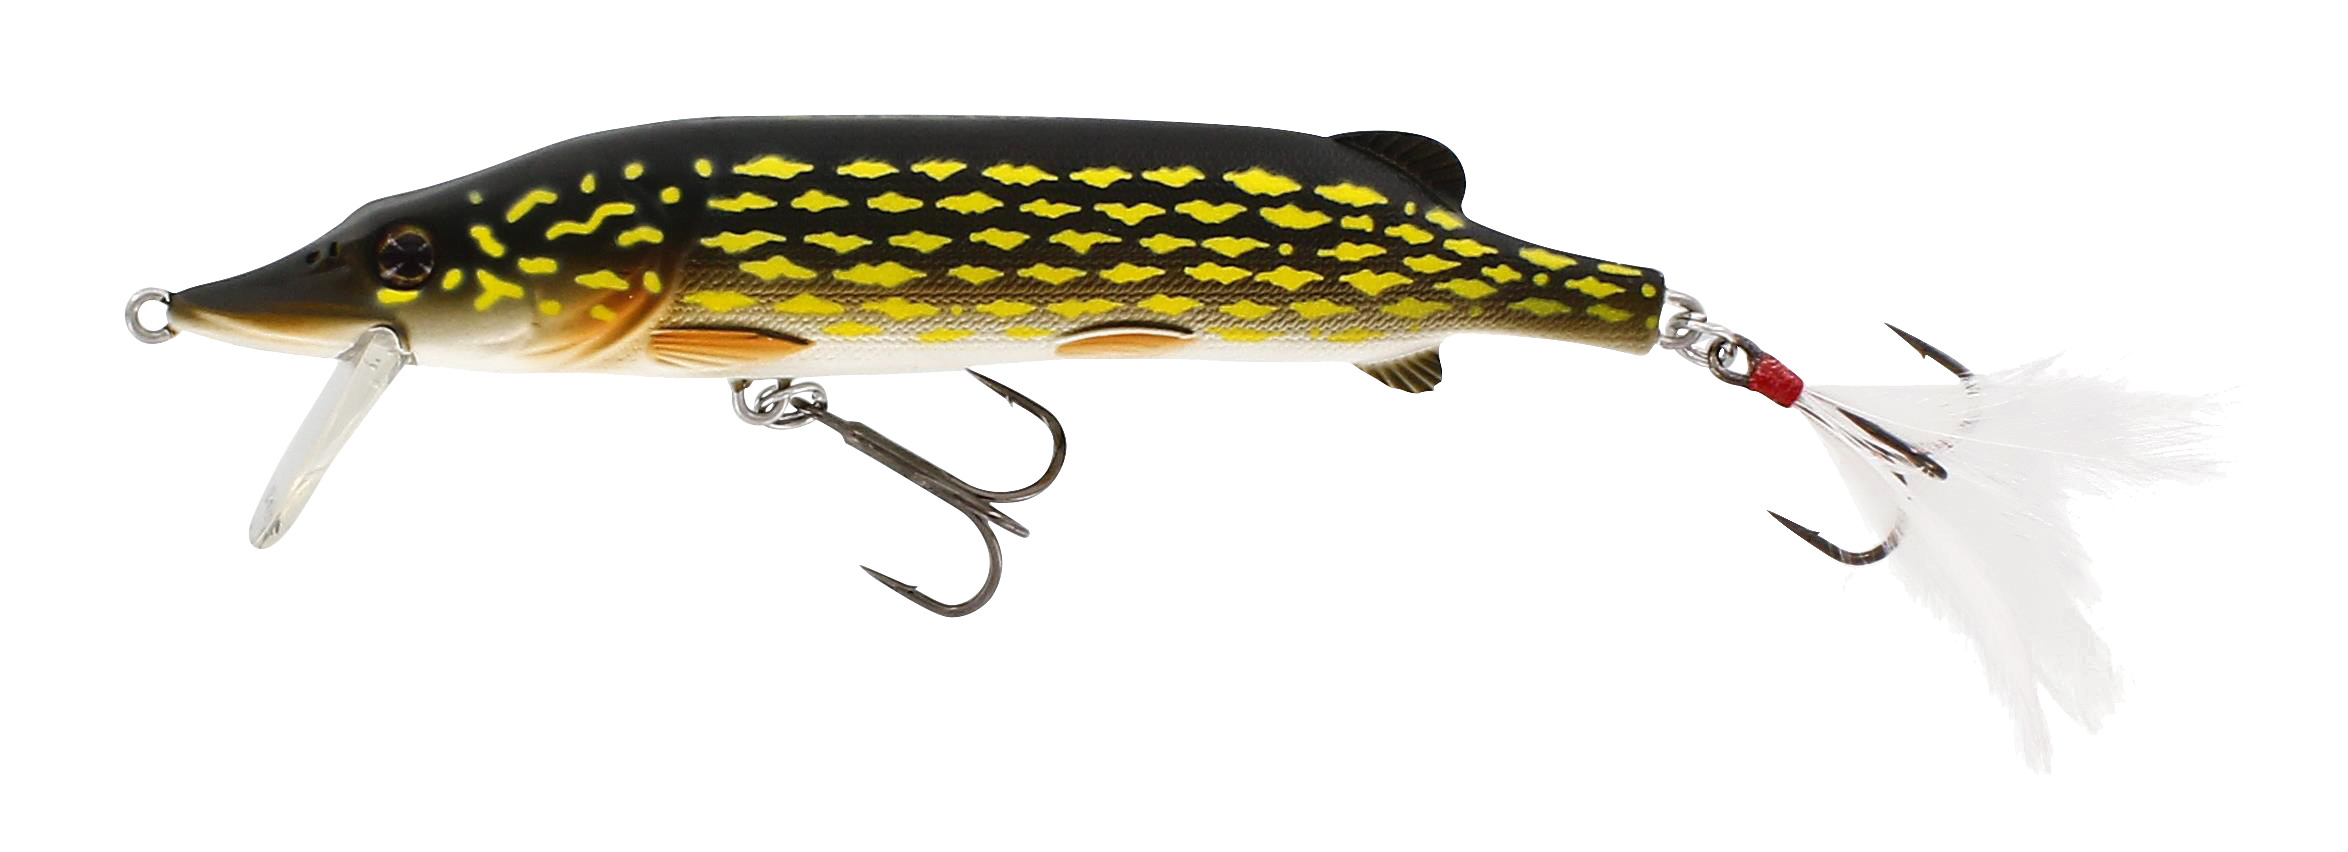 westin mike the pike hard body lures – glasgow angling centre, Hard Baits